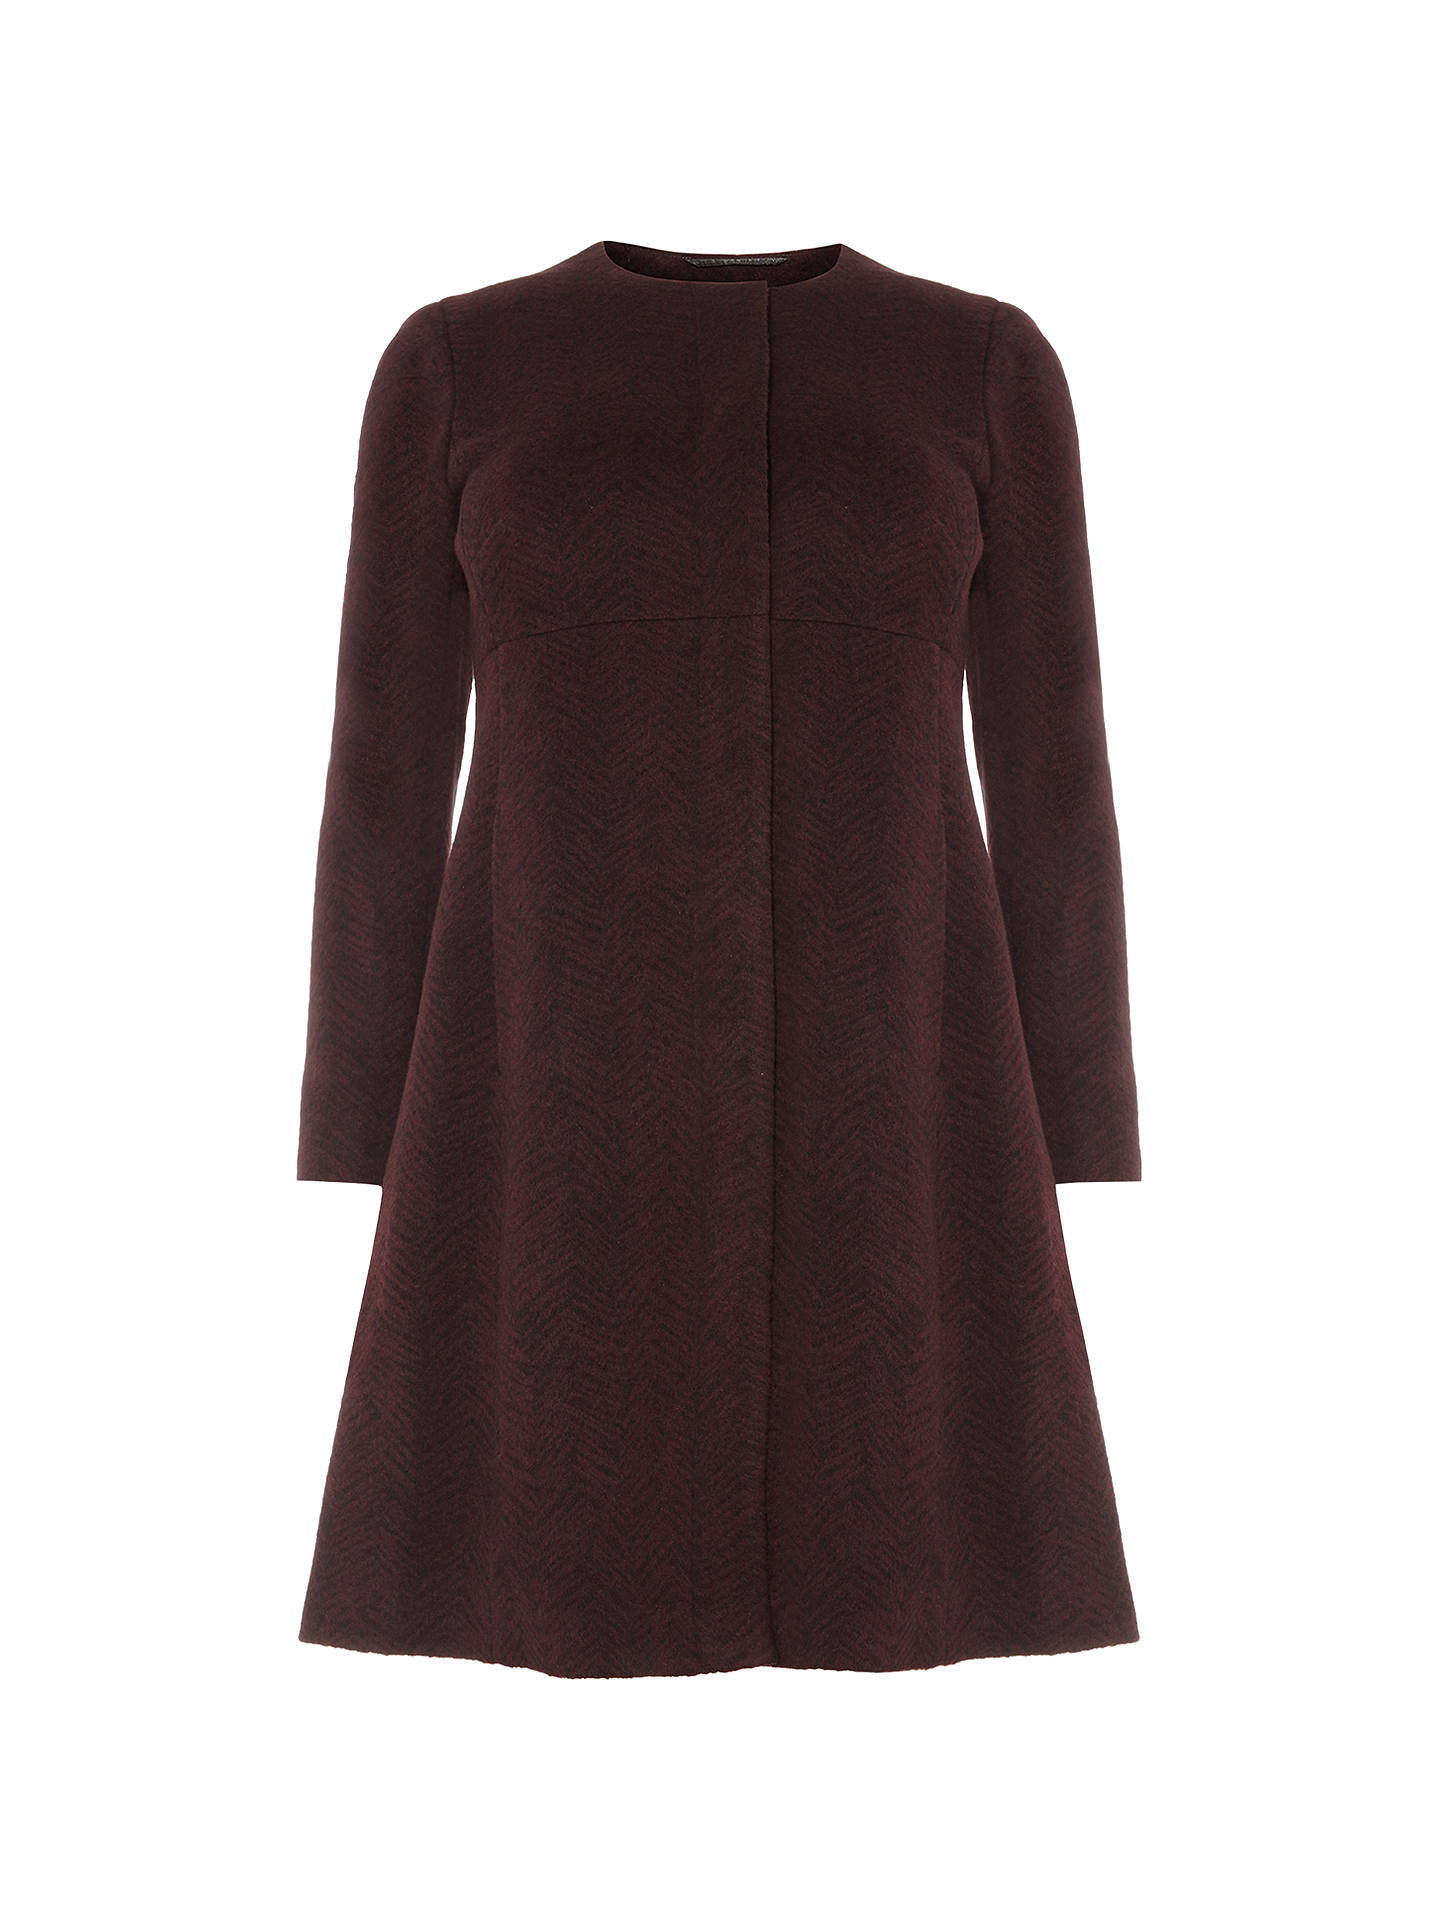 Buy Studio 8 Nina Coat, Burgundy, 26 Online at johnlewis.com